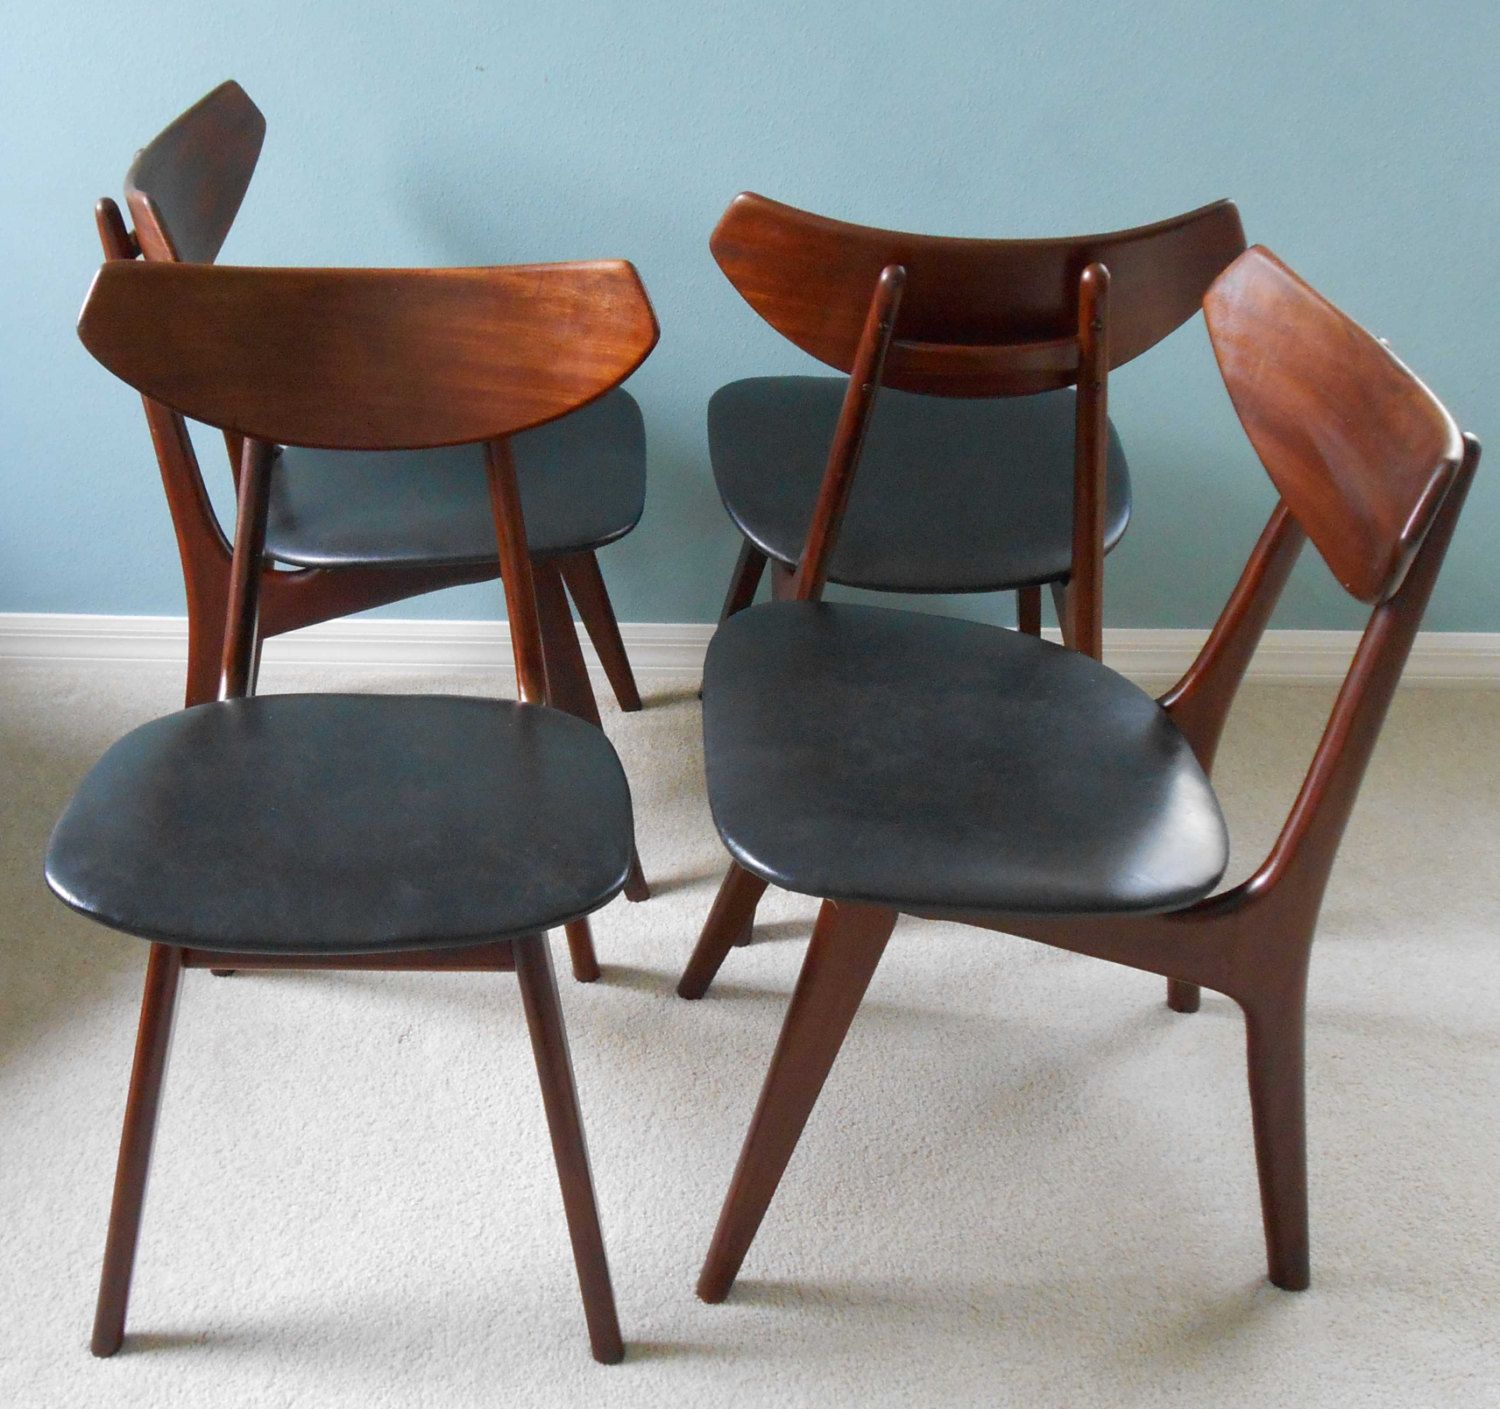 mid century danish modern sculptural dining chairs set of 4 via etsy